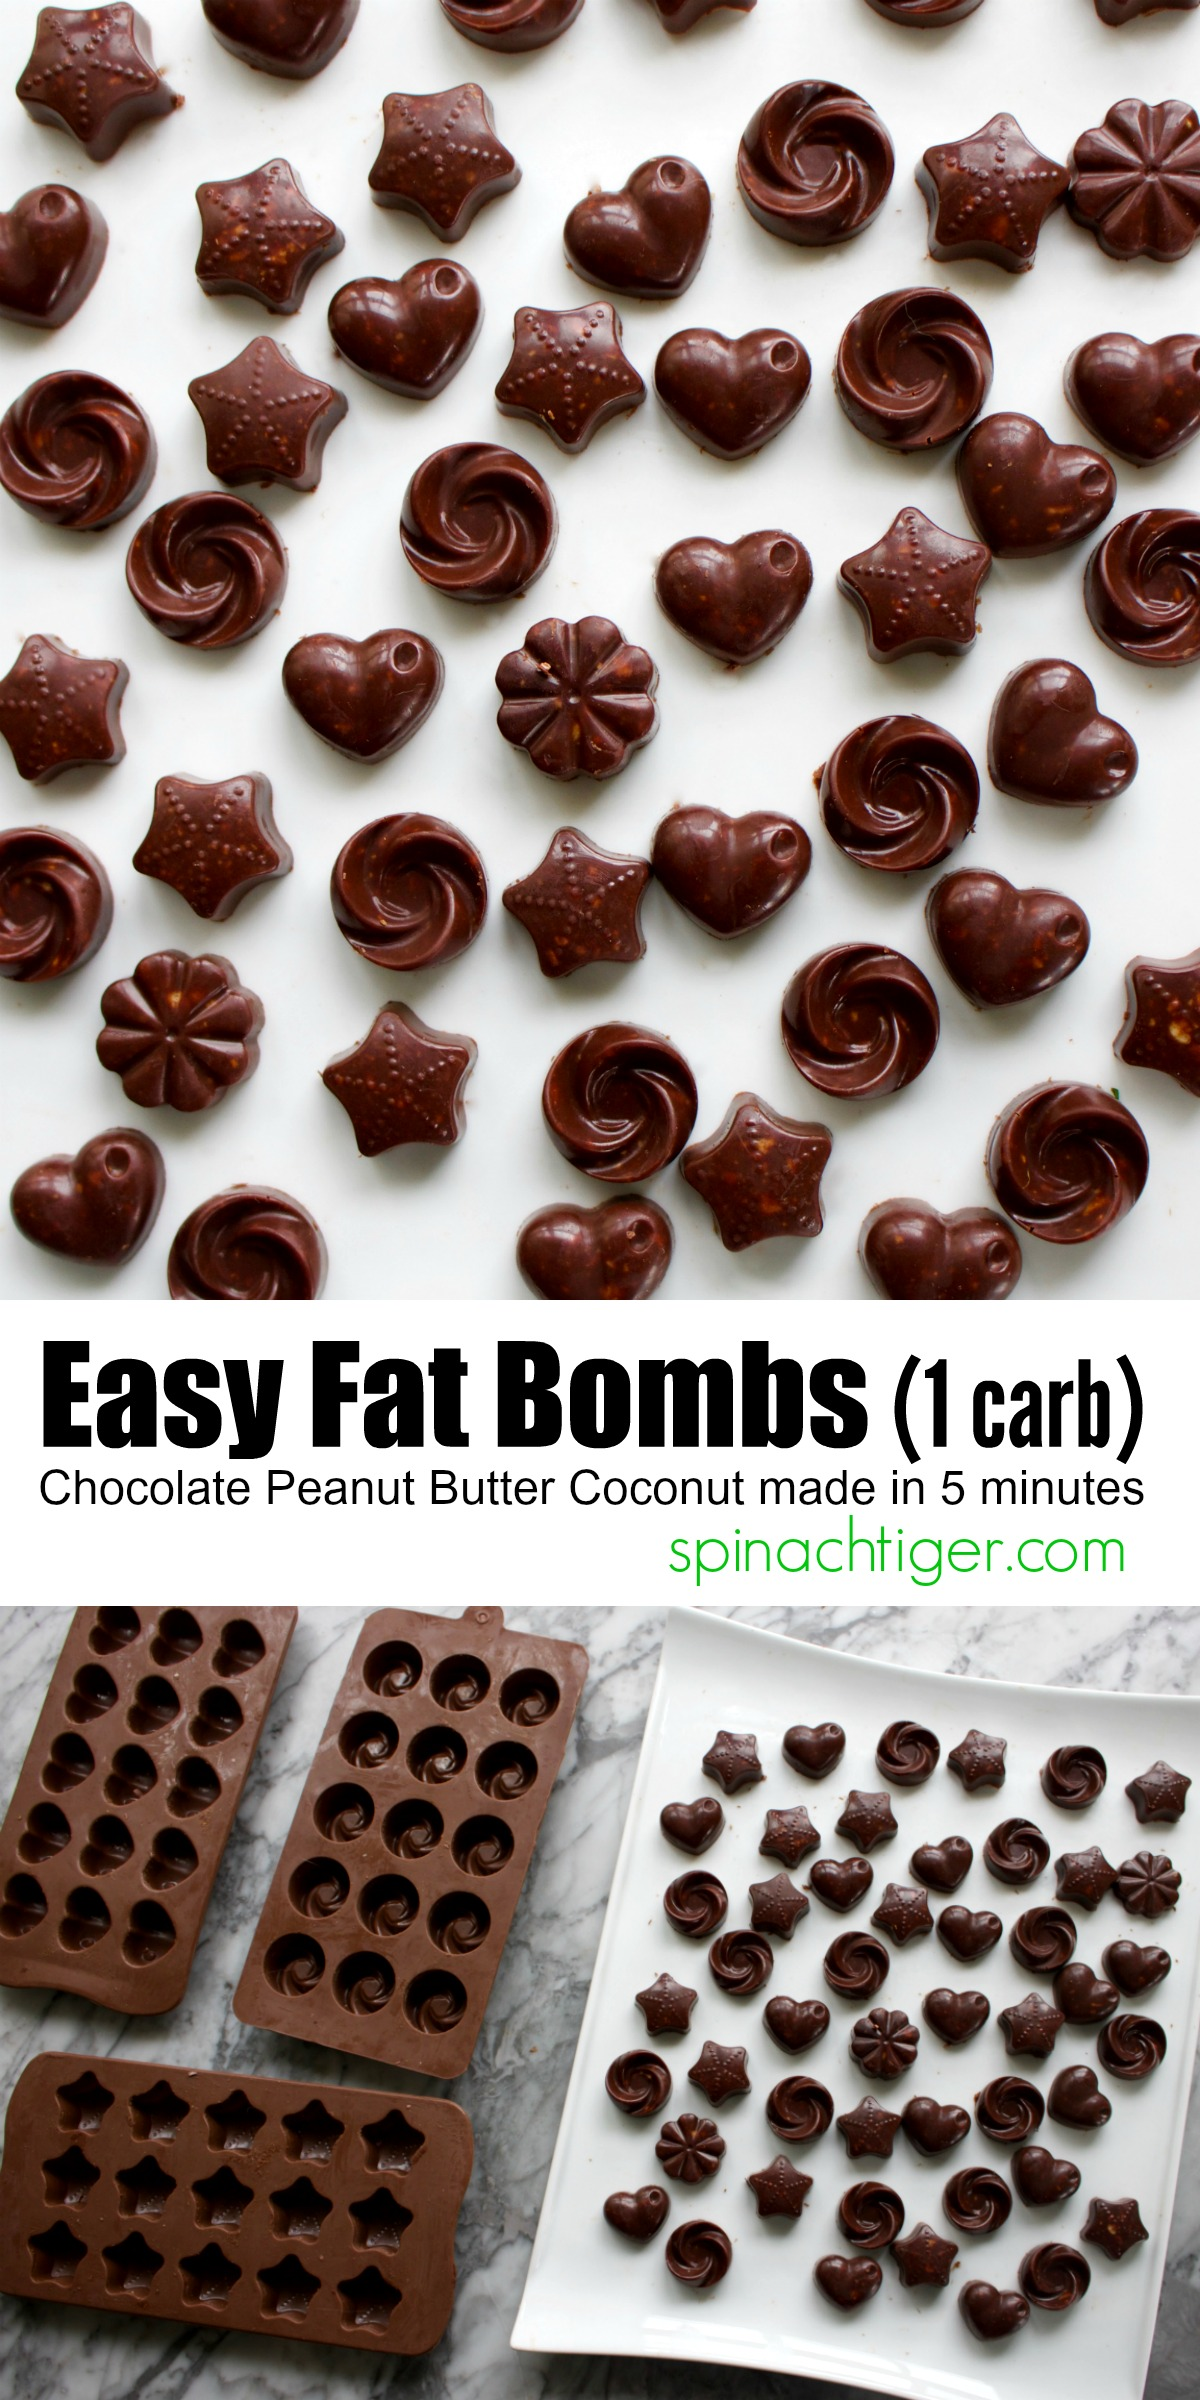 How to Make Easy Fat Bombs from Spinach Tiger